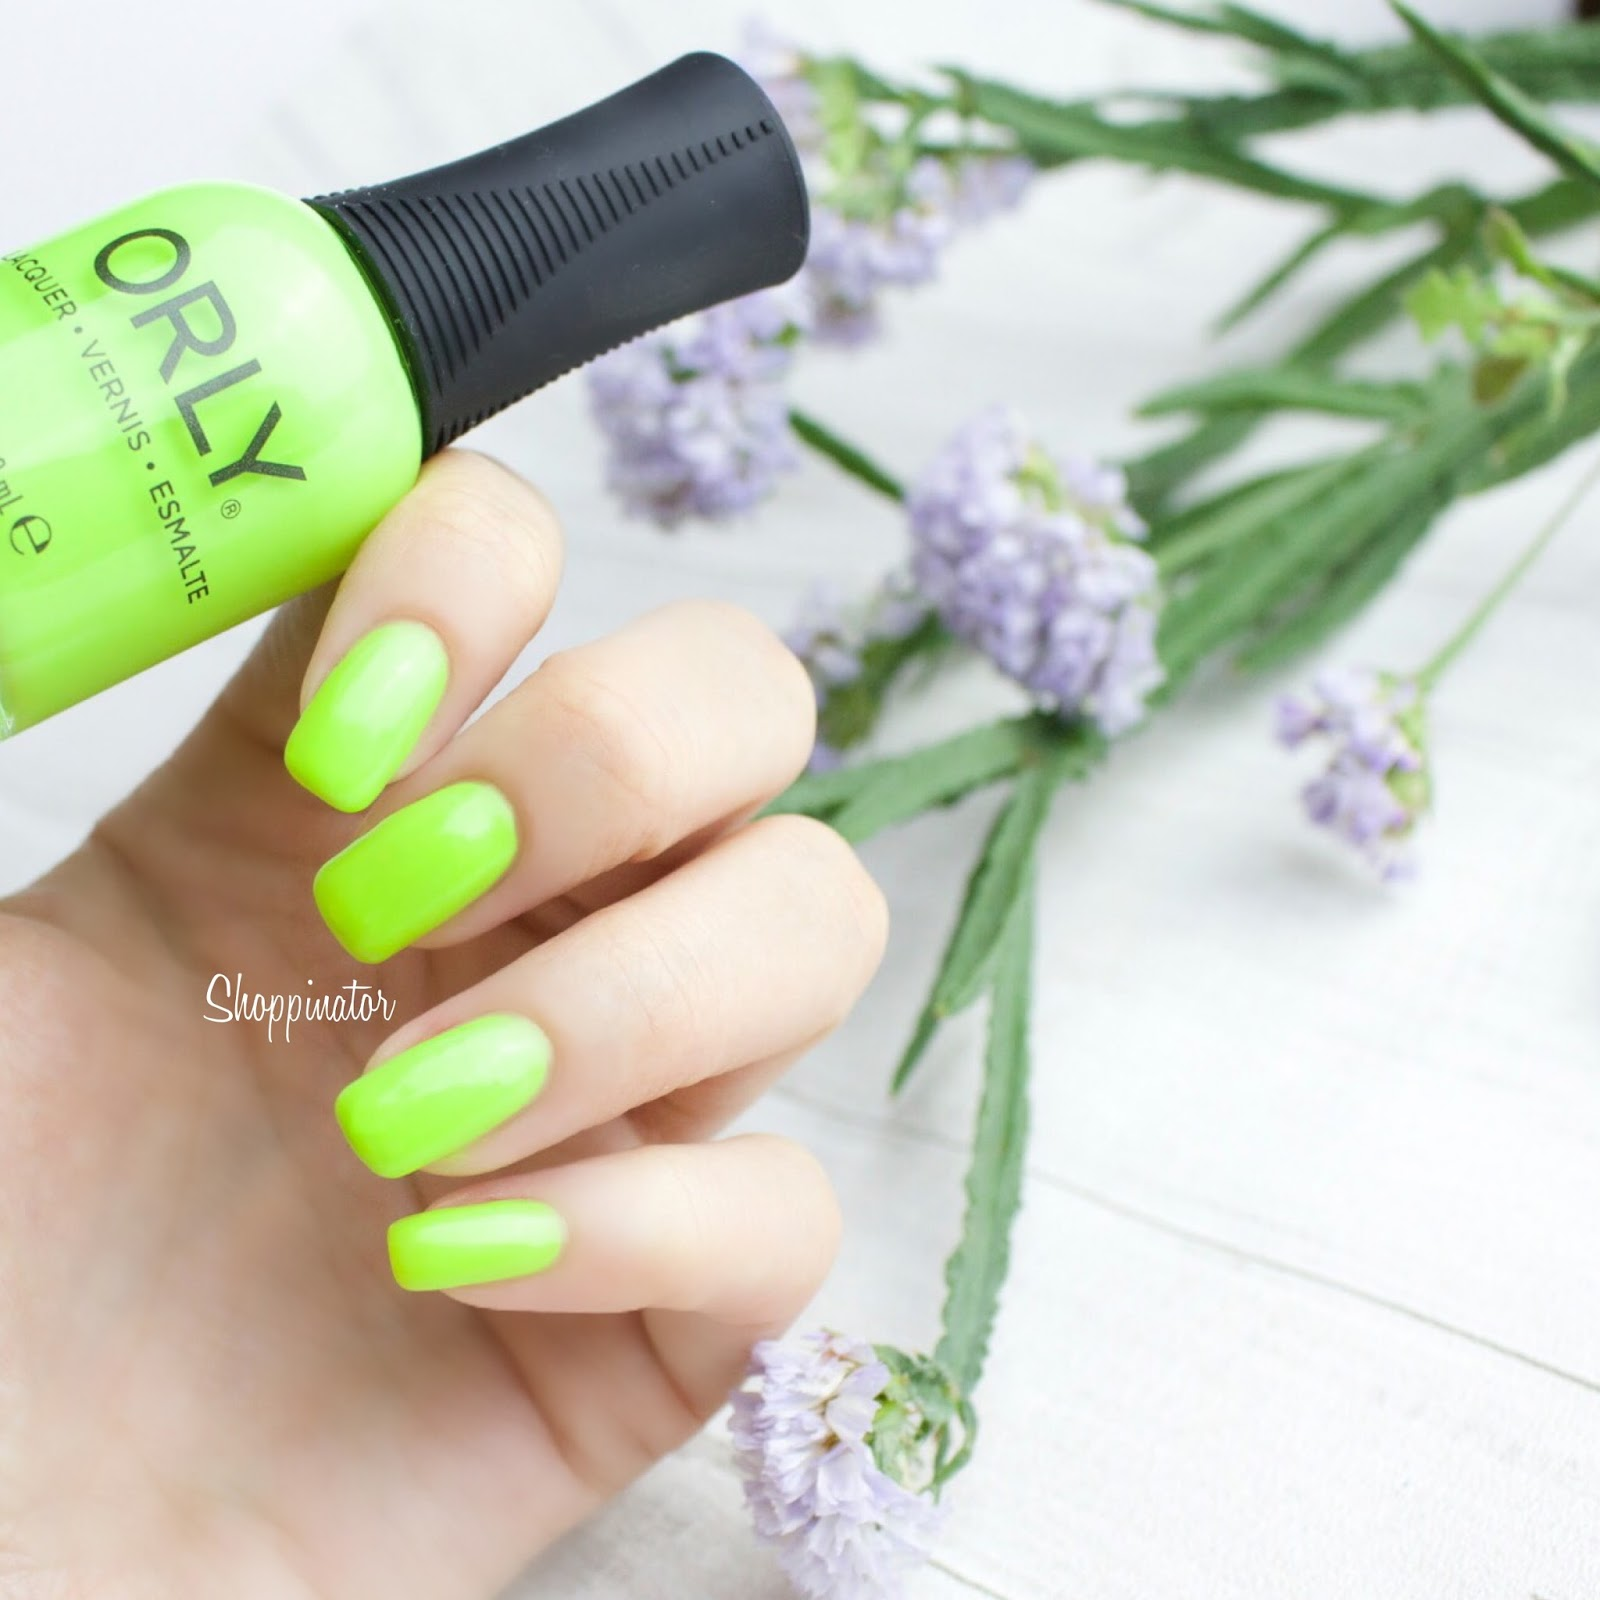 Orly-Adrenaline-Rush-Sommer-LE-Neon-Limitiert-2015-Nagellack-Polish-Nailpolish-Shoppinator-Risky-Behaviour-Fireball-Push-the-limit-thrill-seeker-be-daring-on-the-edge